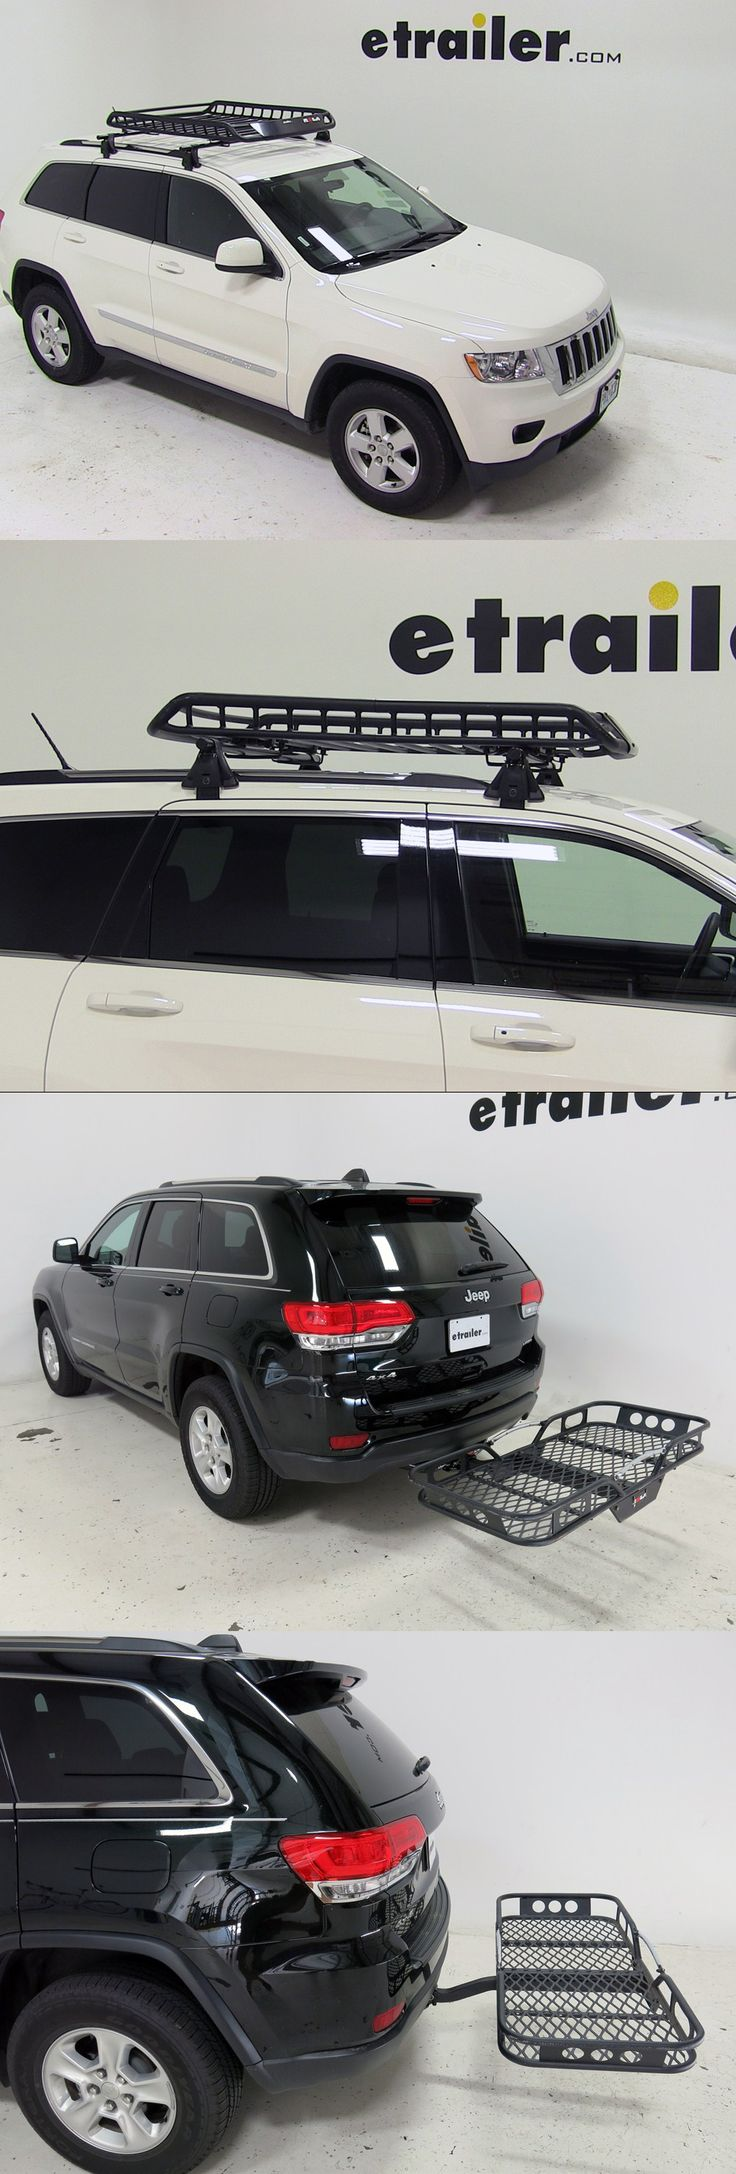 Check out the top 20 most popular cargo carriers for the jeep grand cherokee based on